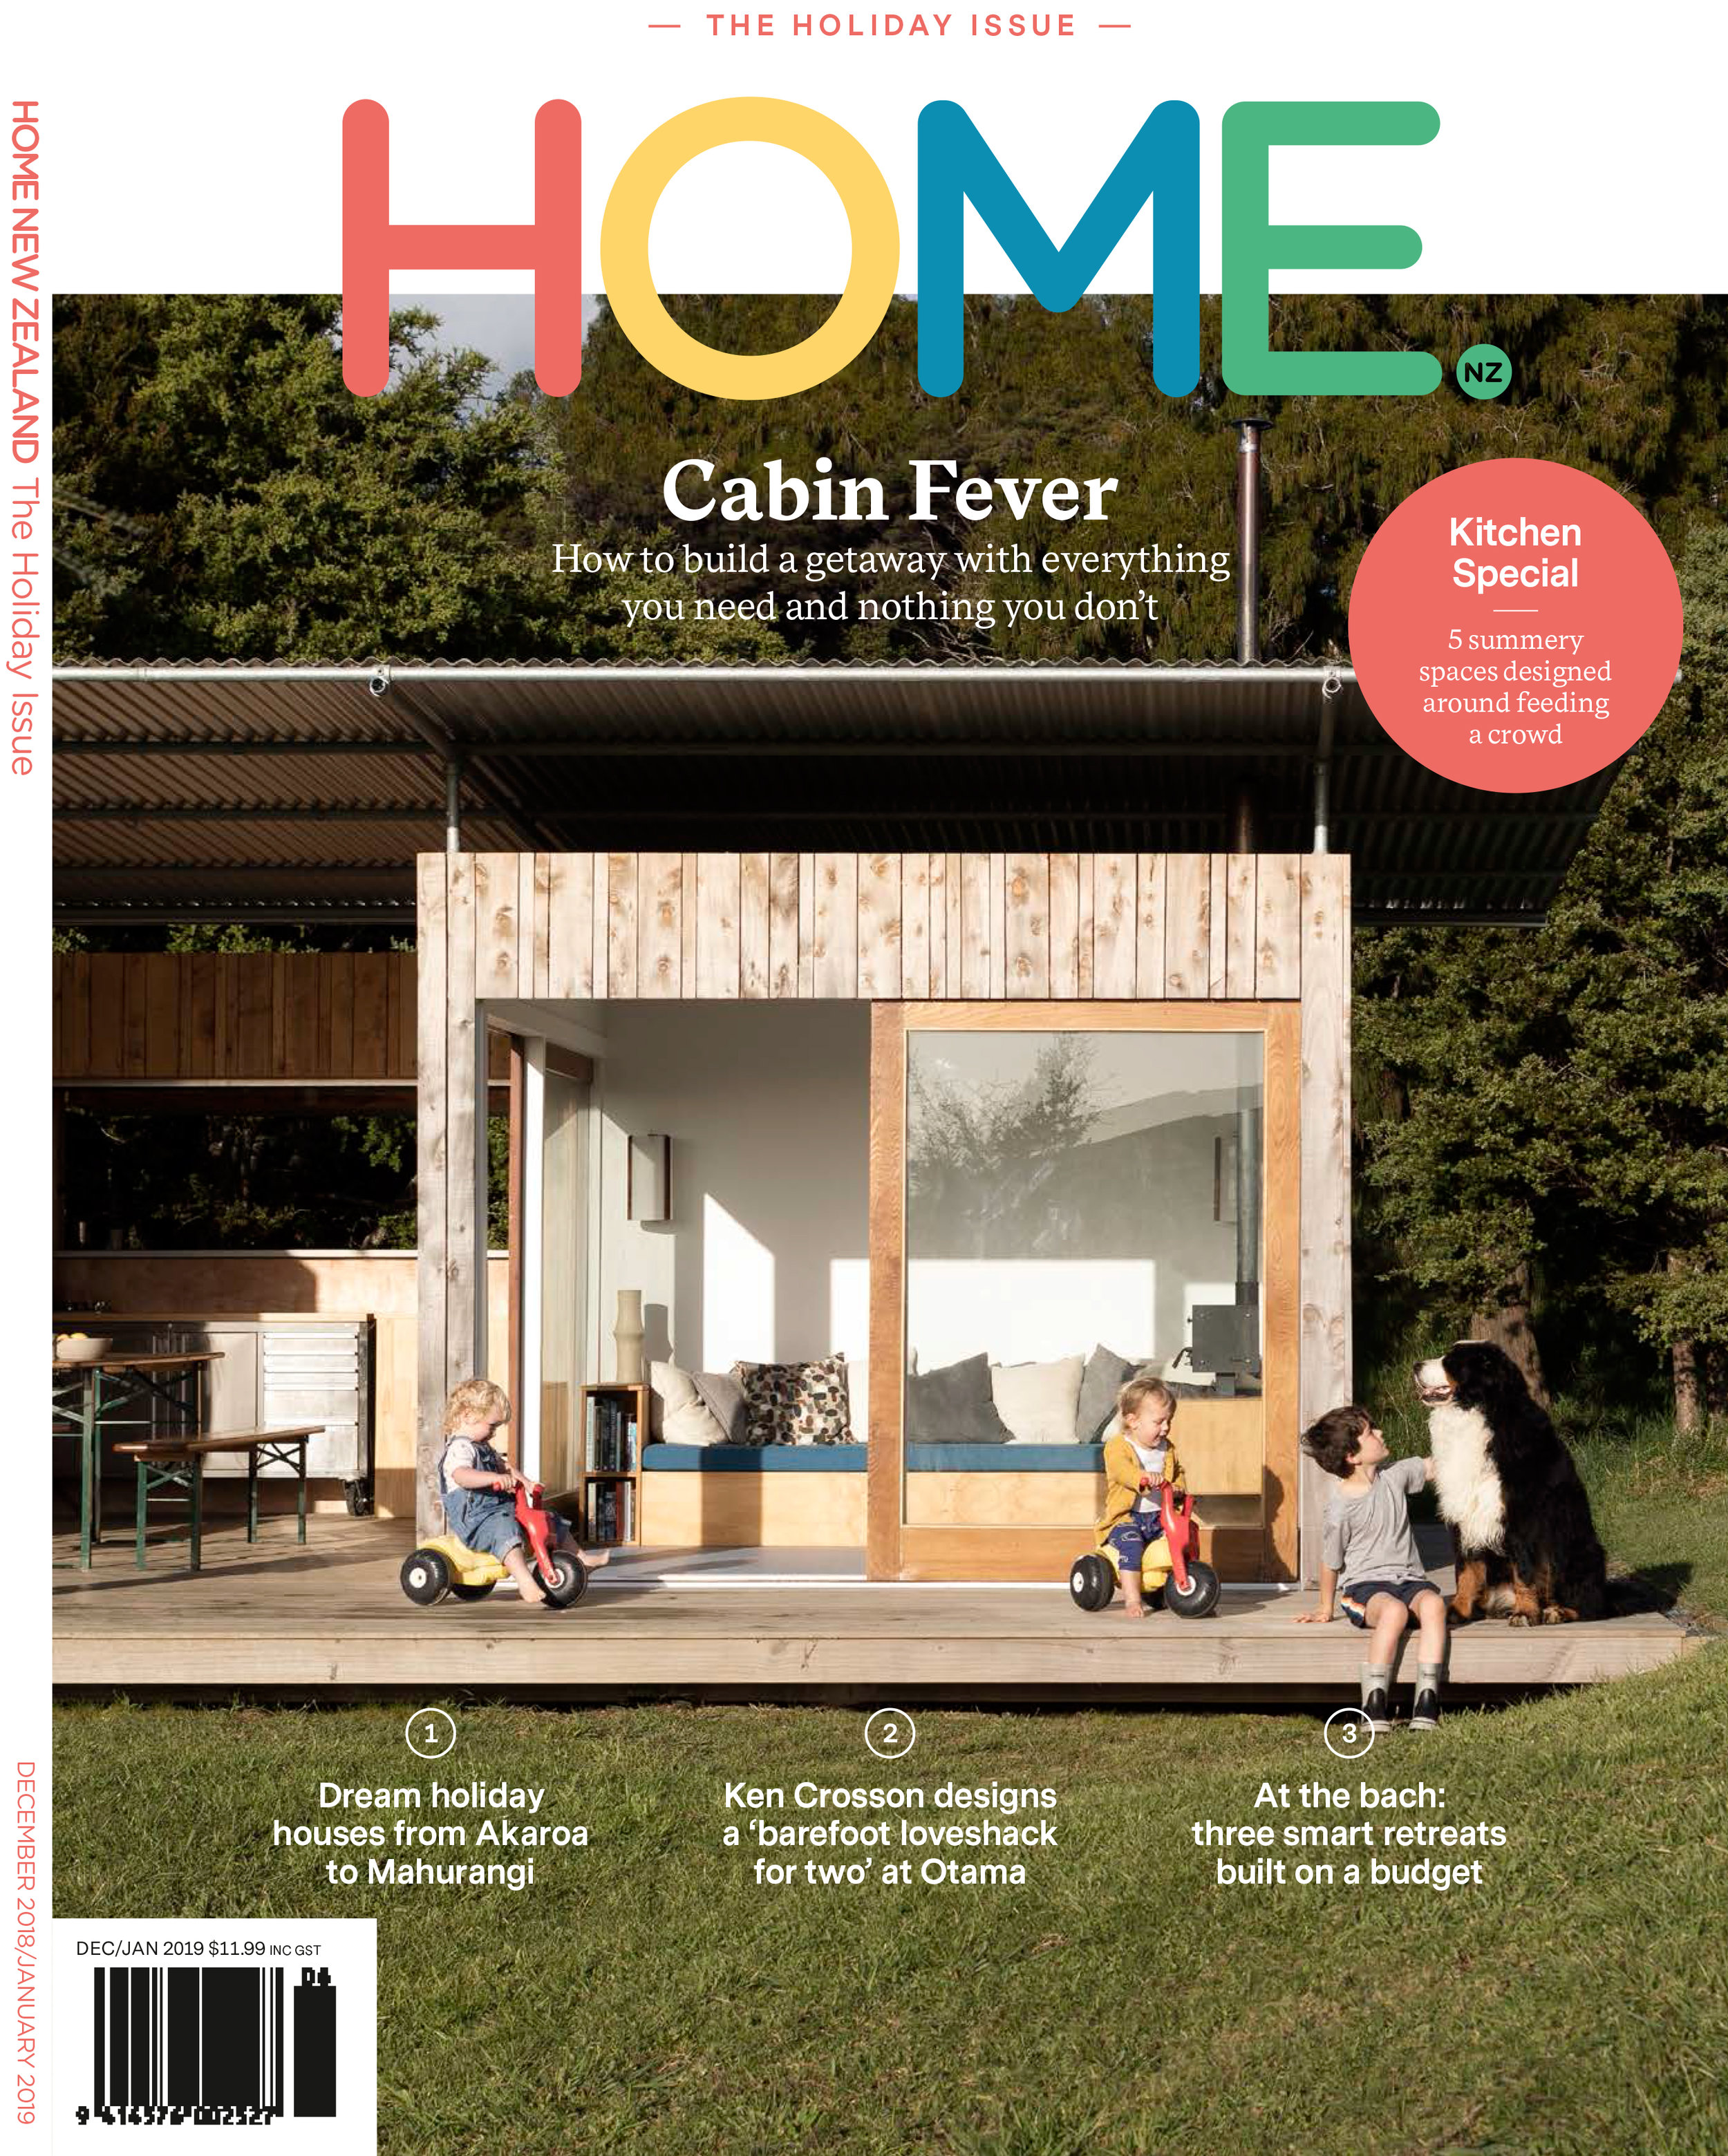 16_Best-magazine-design_6821_HOME_Artwork-2.jpg